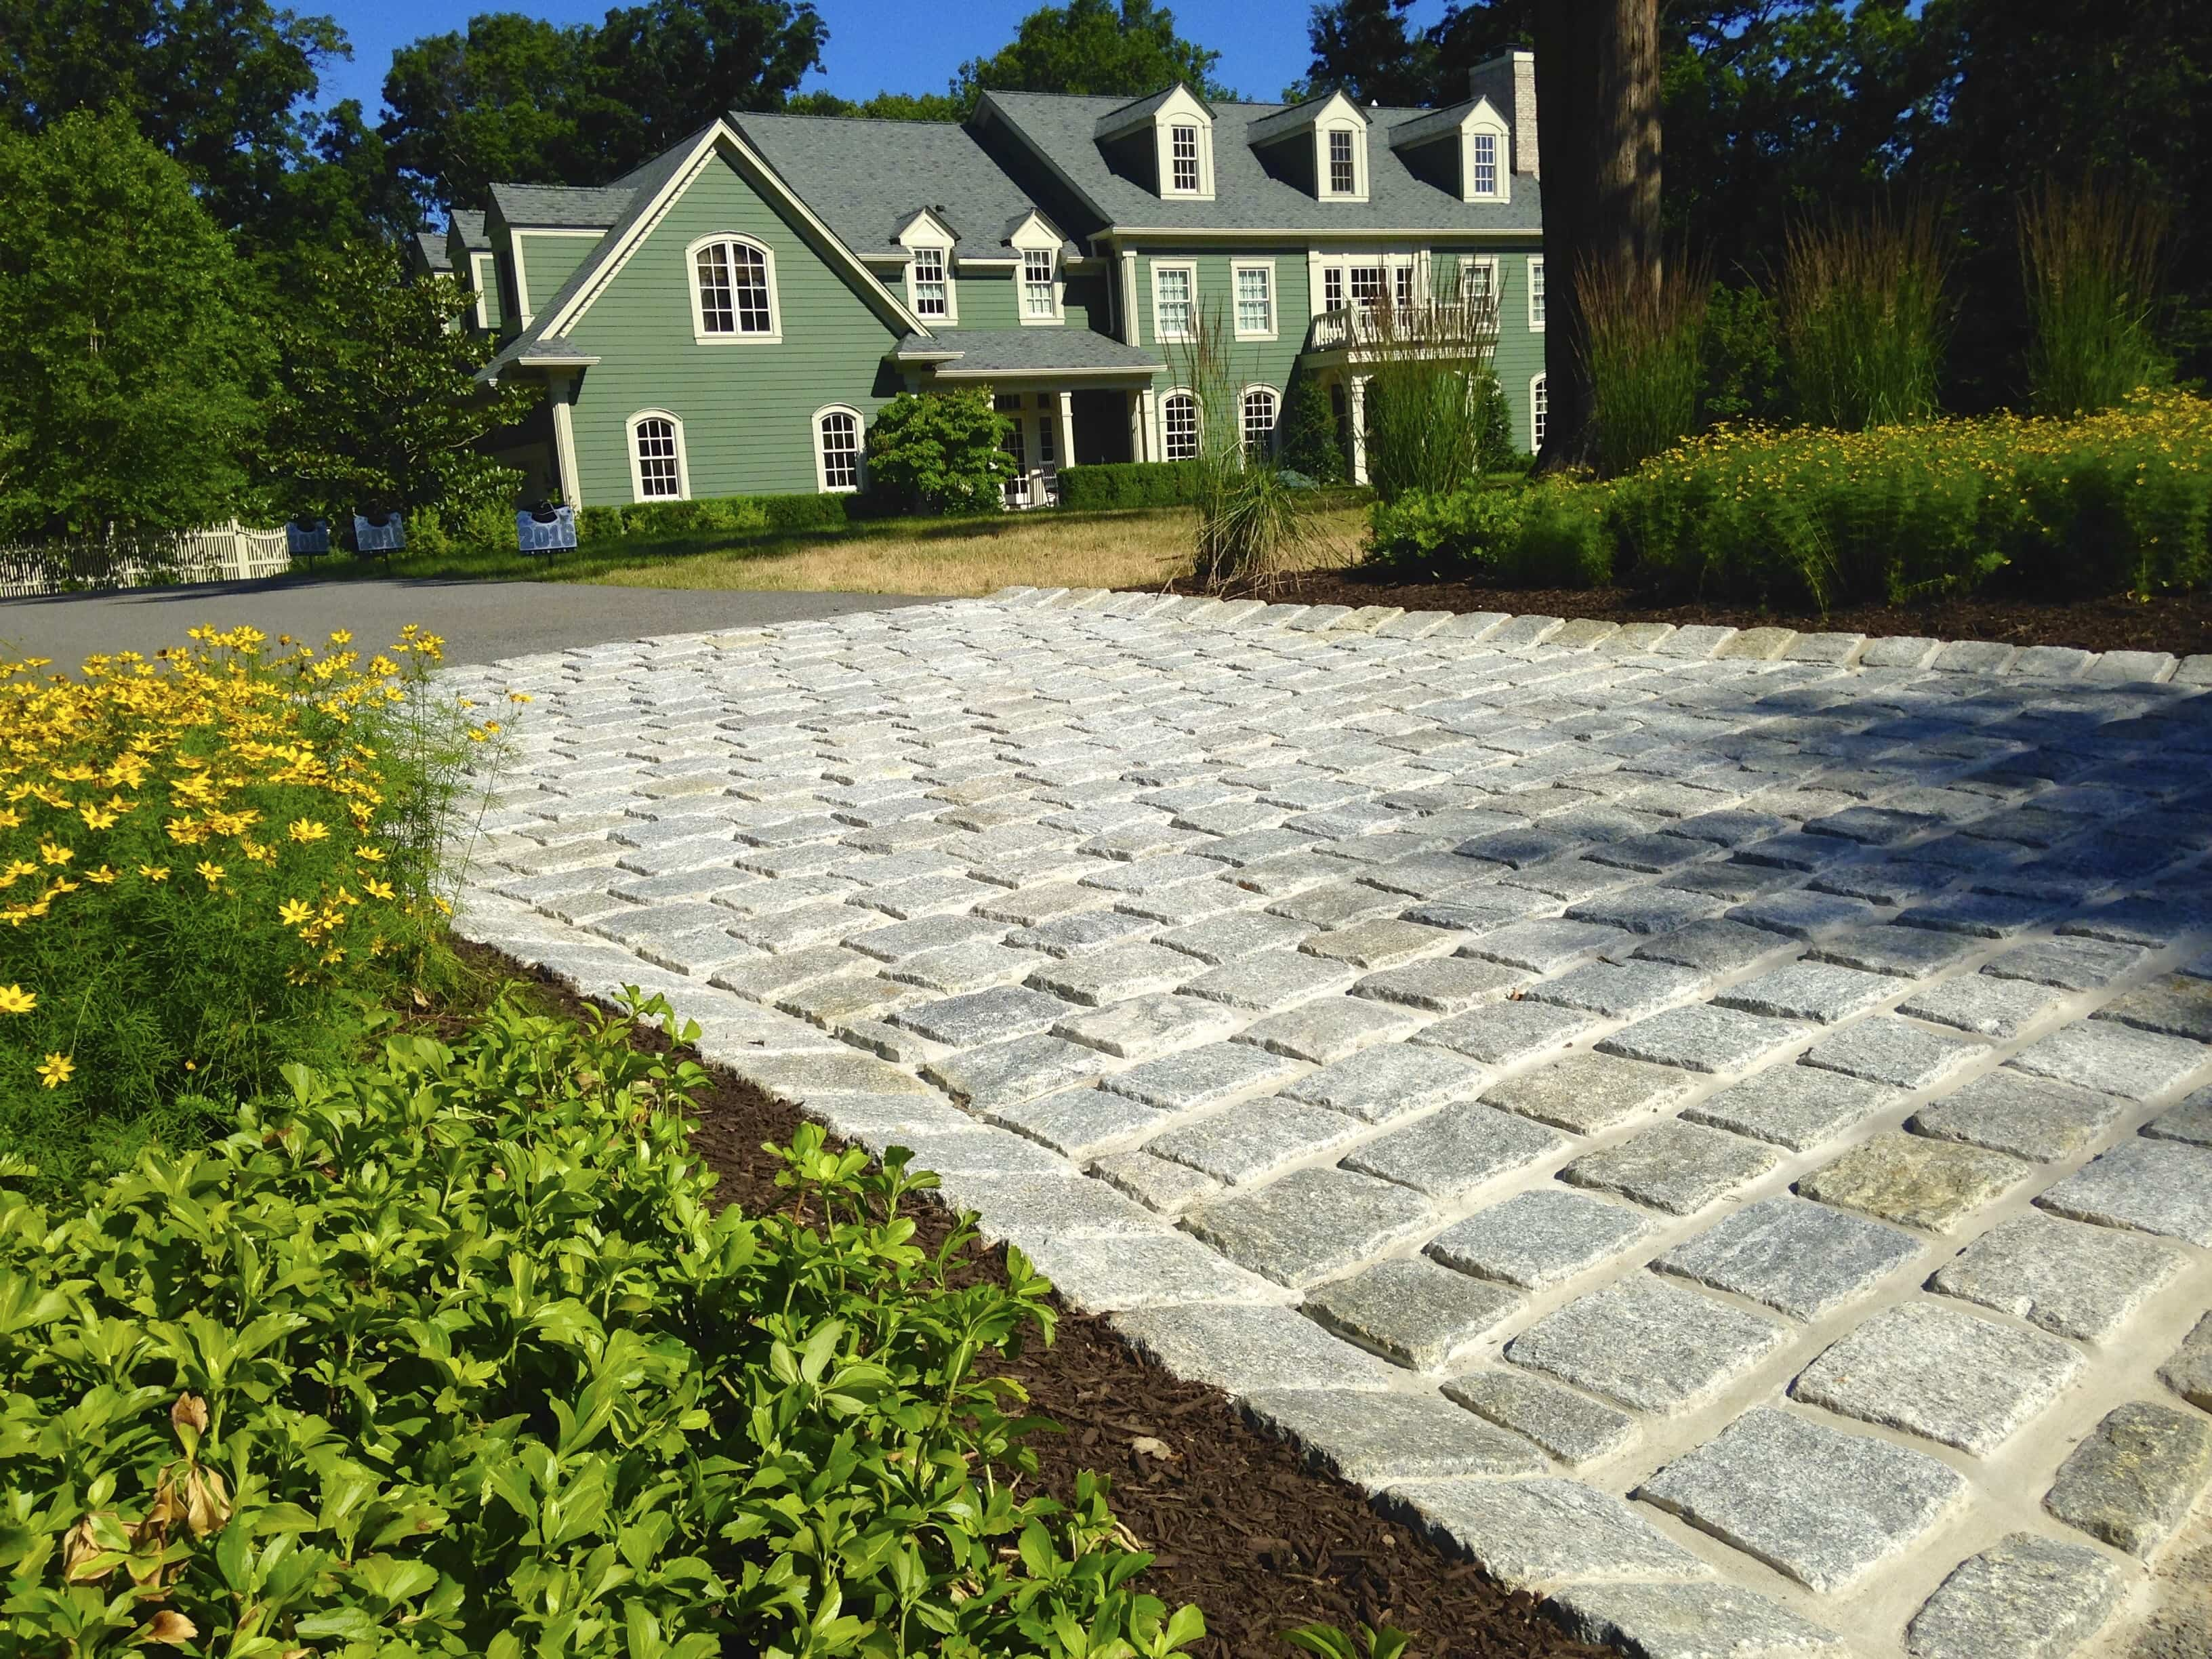 Madlinger Exterior Design LLC Granite cobble driveway apron in Basking Ridge, New Jersey